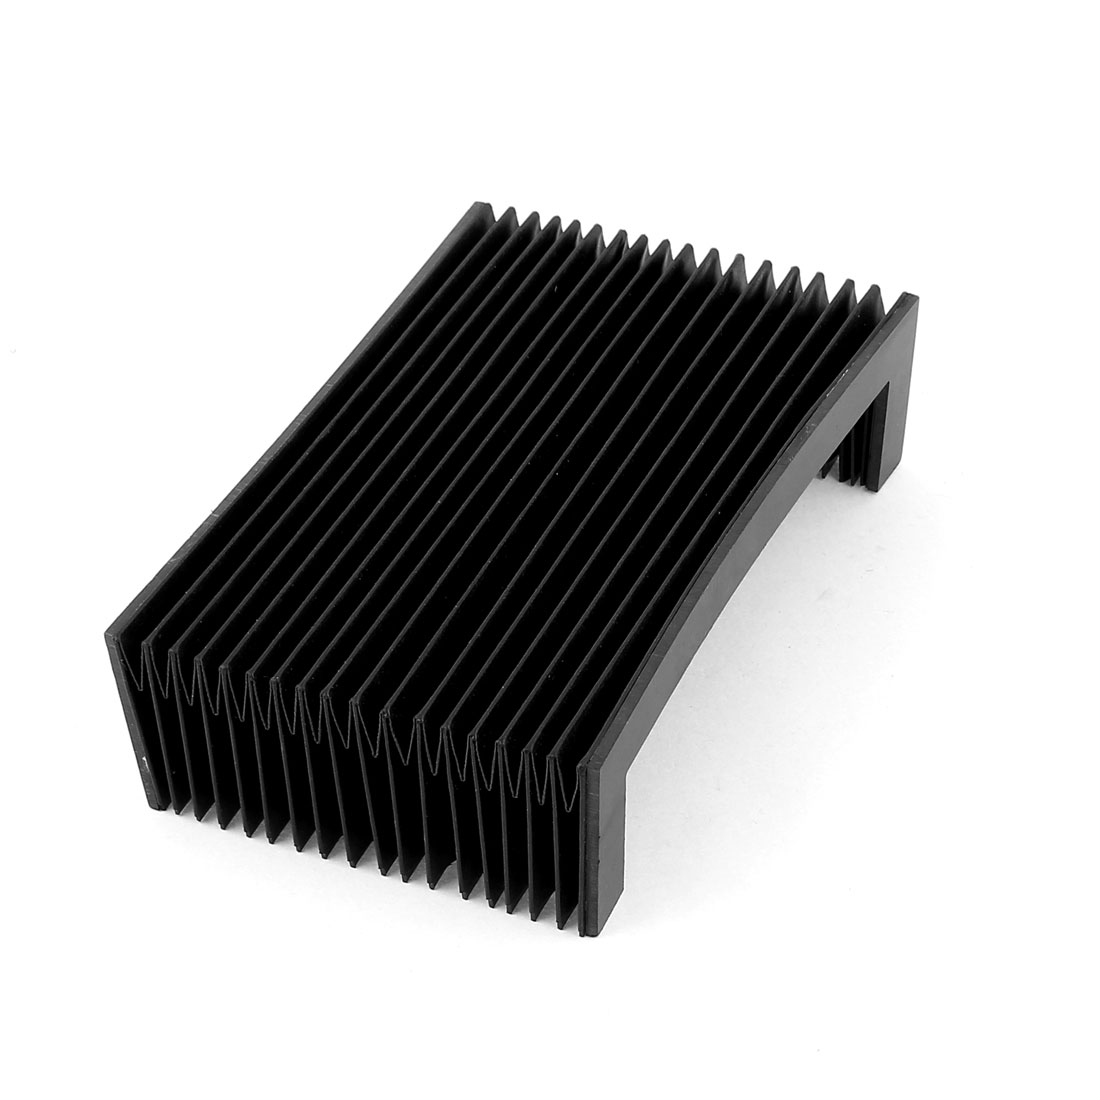 CNC Machine Fitting Flexible Foldable Accordion Dust Cover 30 x 18 x 5cm Black